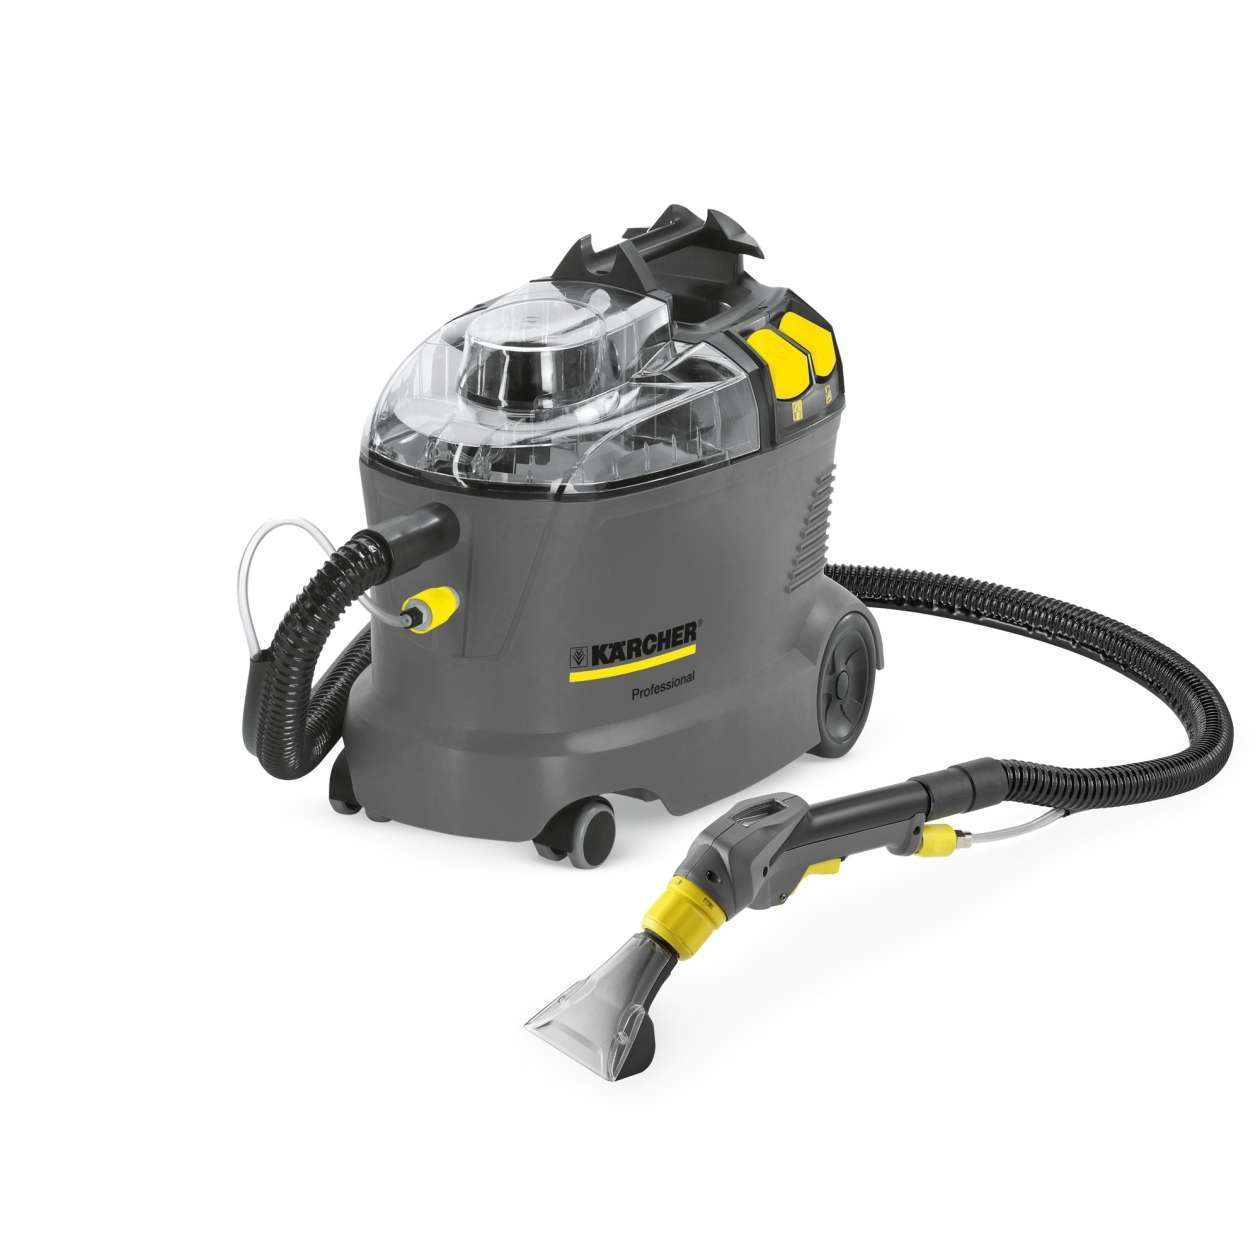 Karcher Puzzi 8 1 Compact Upholstery Cleaner Powervac